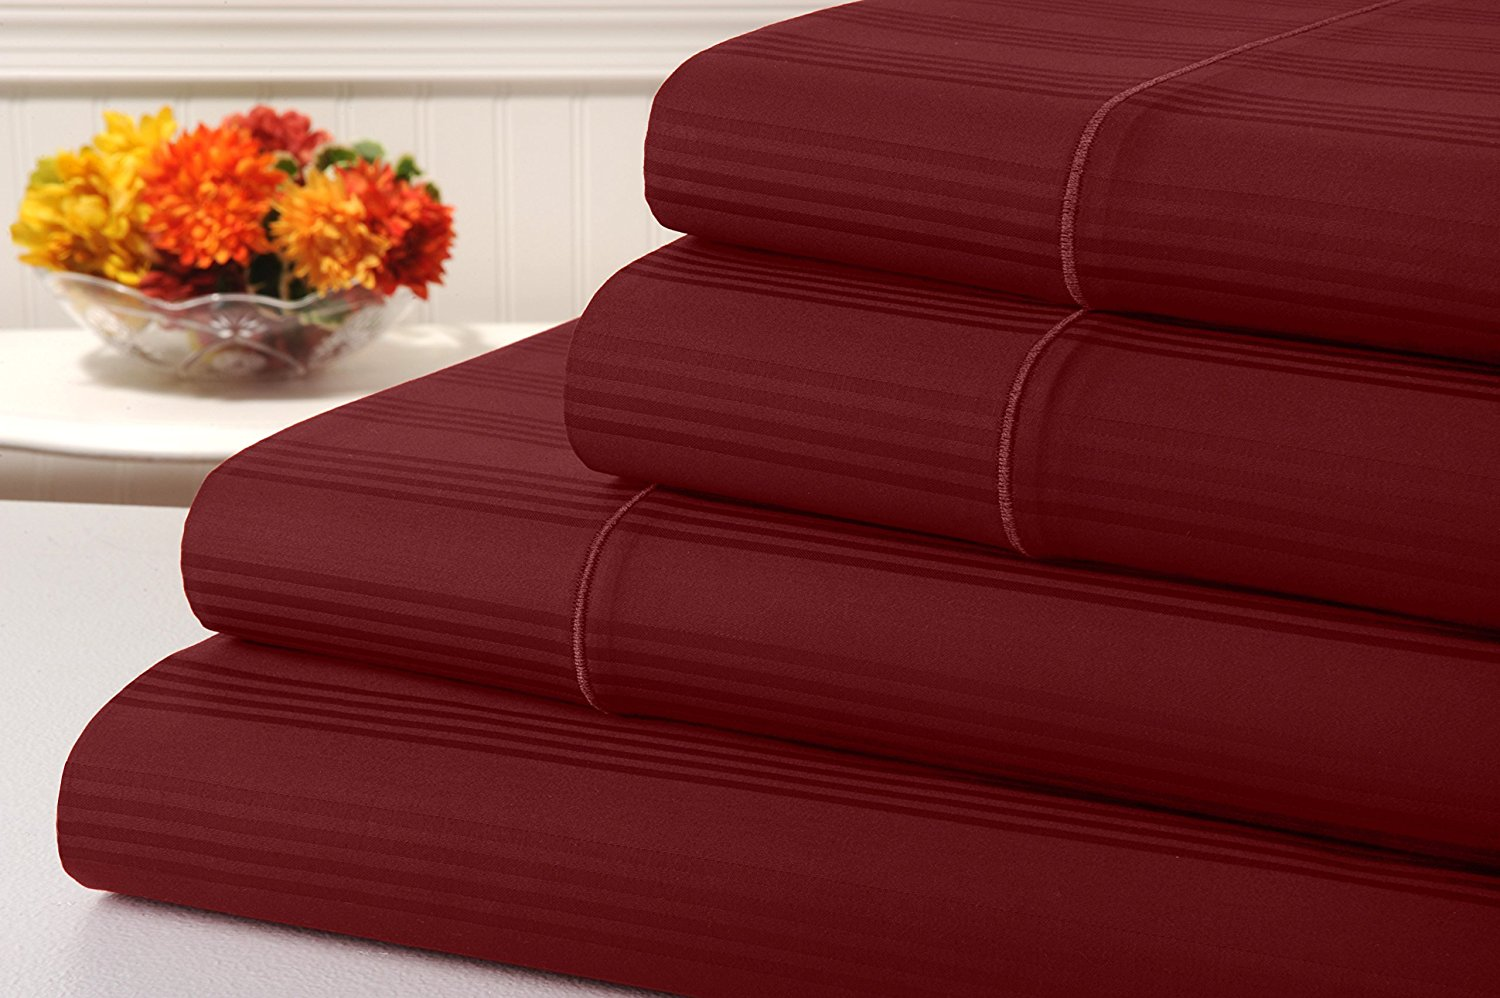 kathy ireland 400 Thread Count 100% Cotton Stripe Bed Sheet Set, Bed Sheets 4 Piece Set, Long-staple Combed Pure Natural Cotton Bedsheets, Soft & Silky Sateen Weave by Home (Queen, Tango Red)